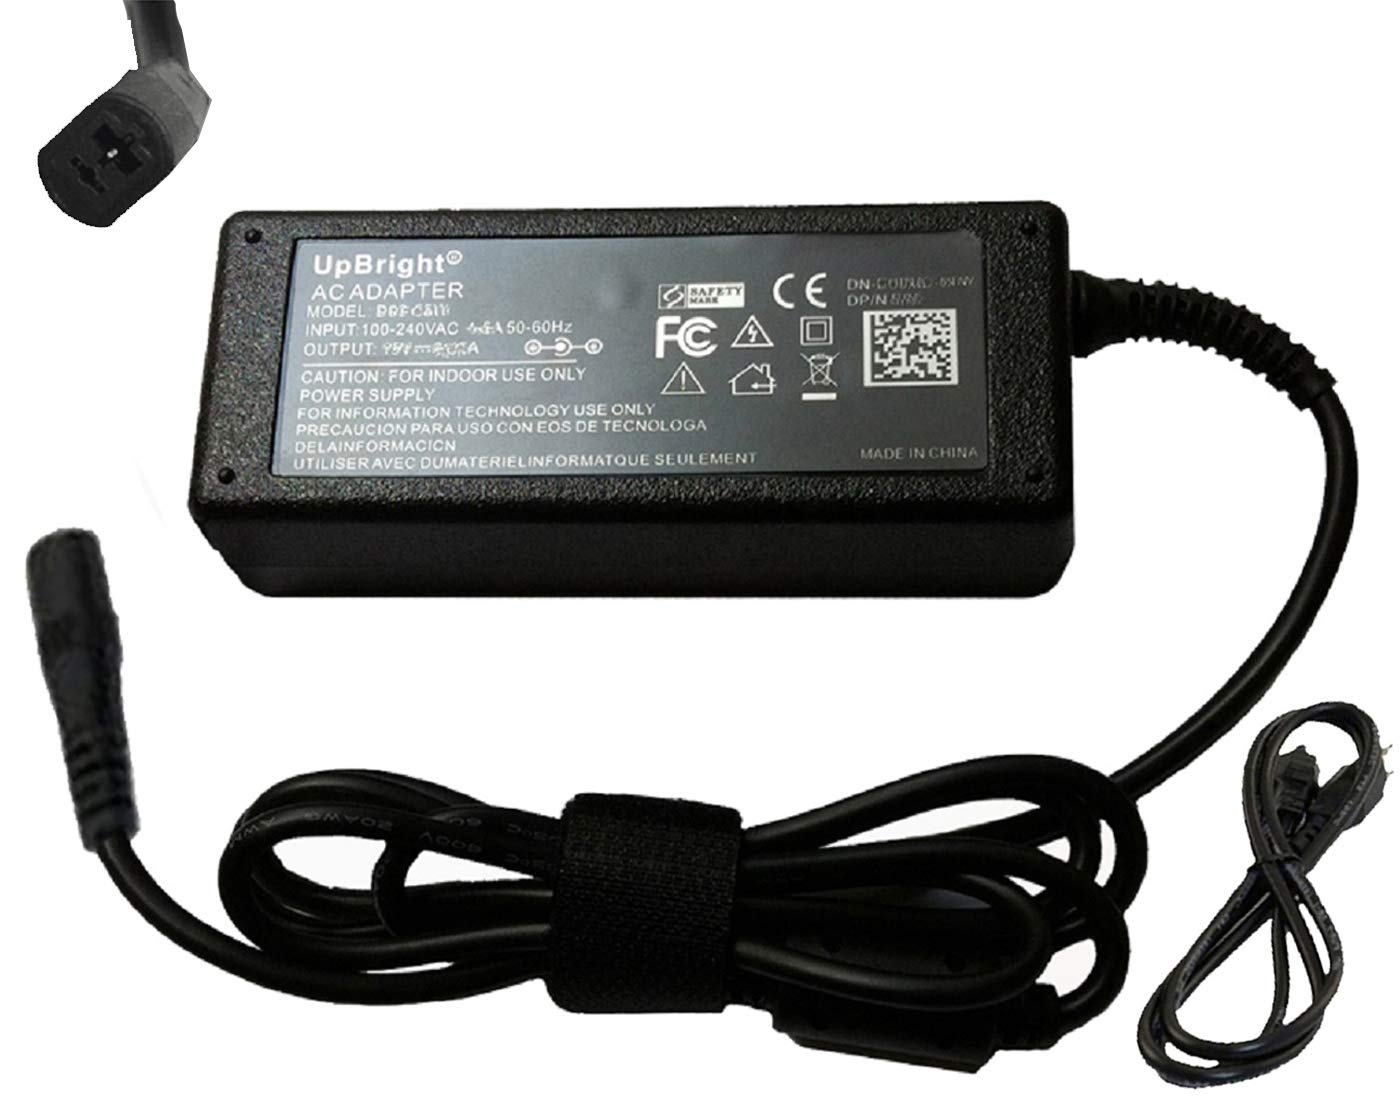 UpBright 2-Prong 29V AC/DC Adapter Replacement for Changzhou Kaidi Electrical Co Ltd P/N KDDY001 KDDY008 KDDY001B KD KDDY001A KDDY001 A B 29VDC 2A DC29V 2.0A 29.0V Power Supply Cord Cable Charger PS